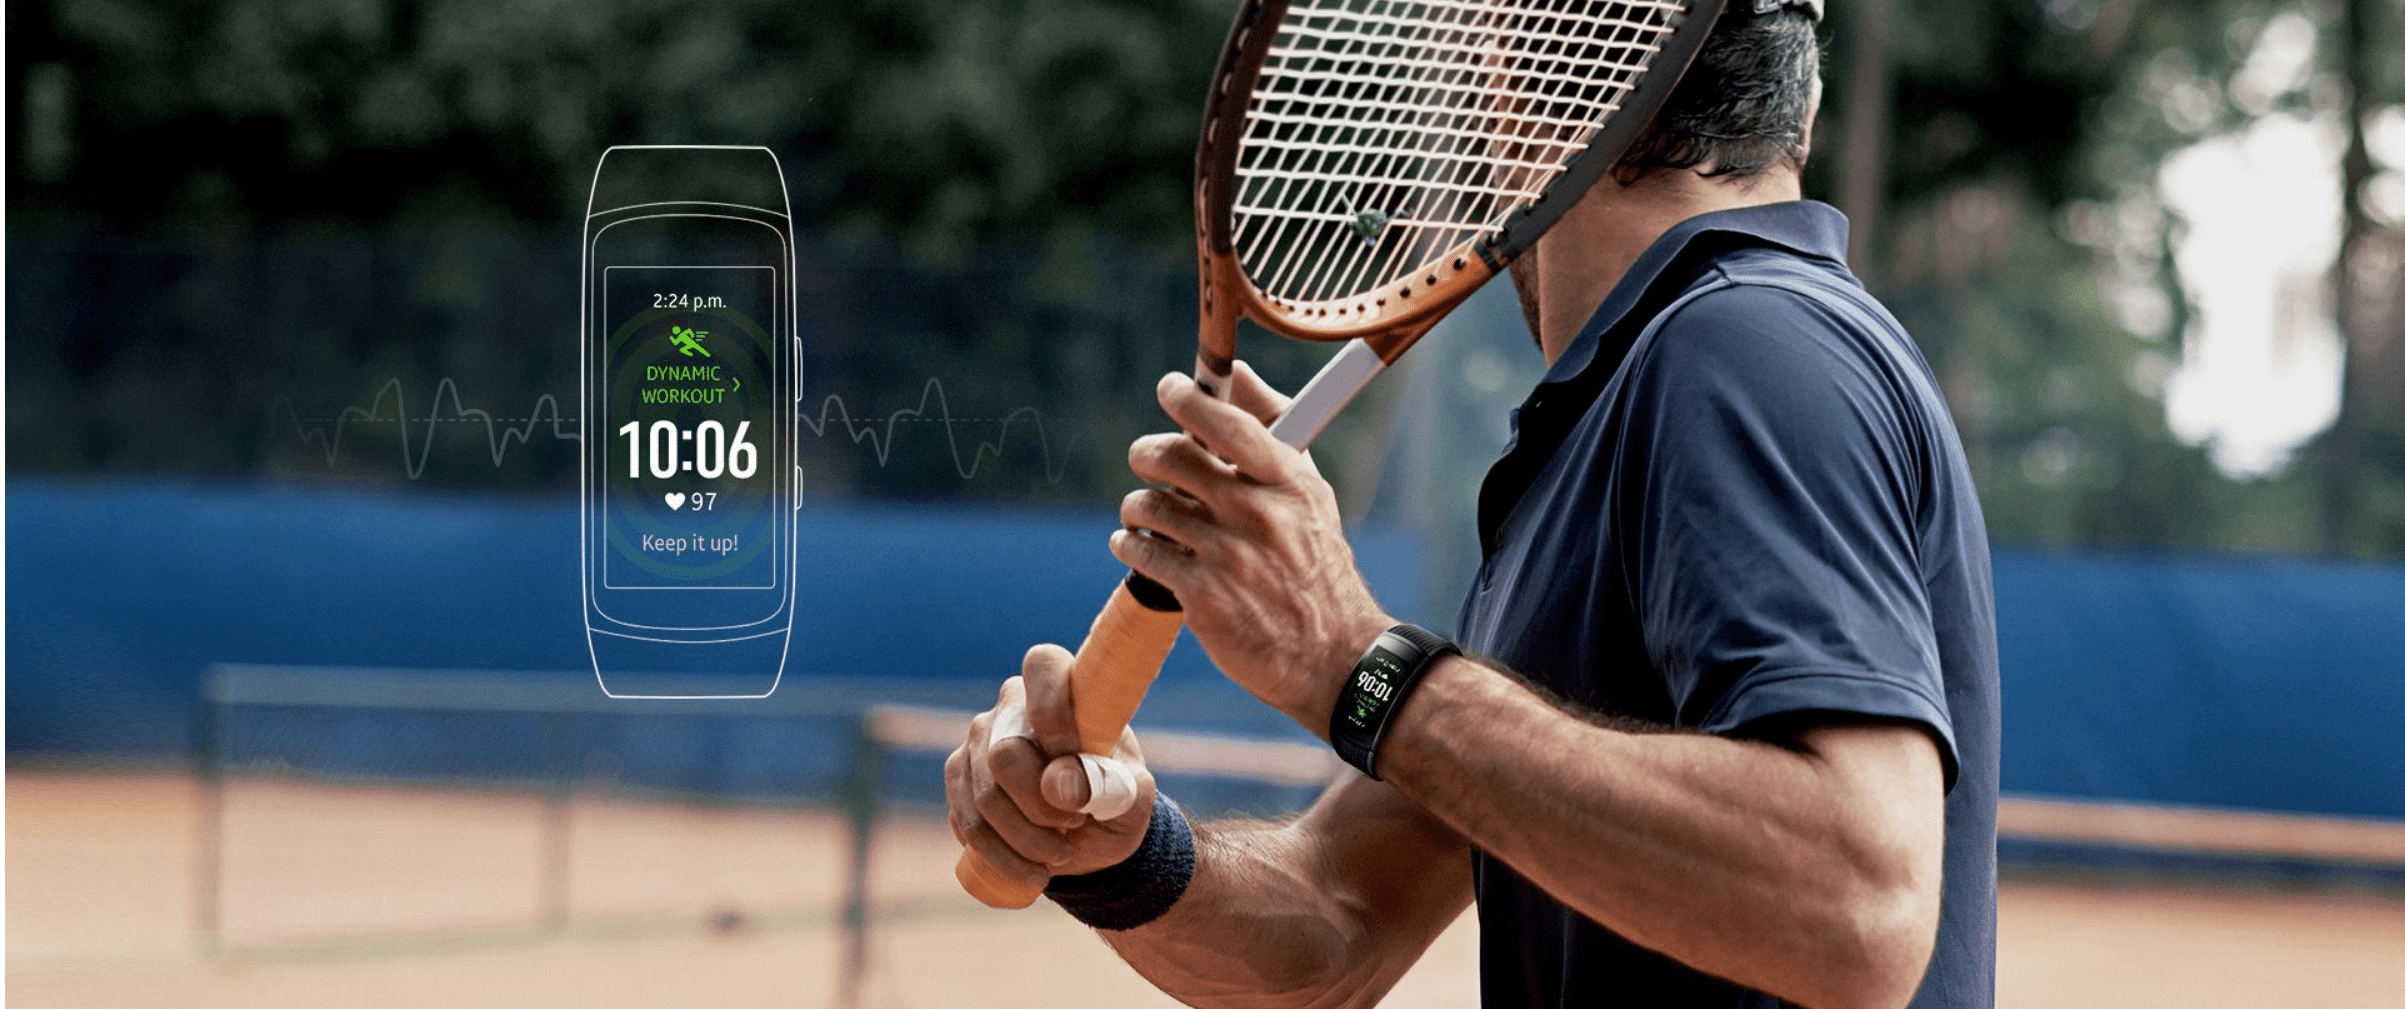 Man holding tennis racket next to visualization of Samsung Gear Fit2 Pro Watch